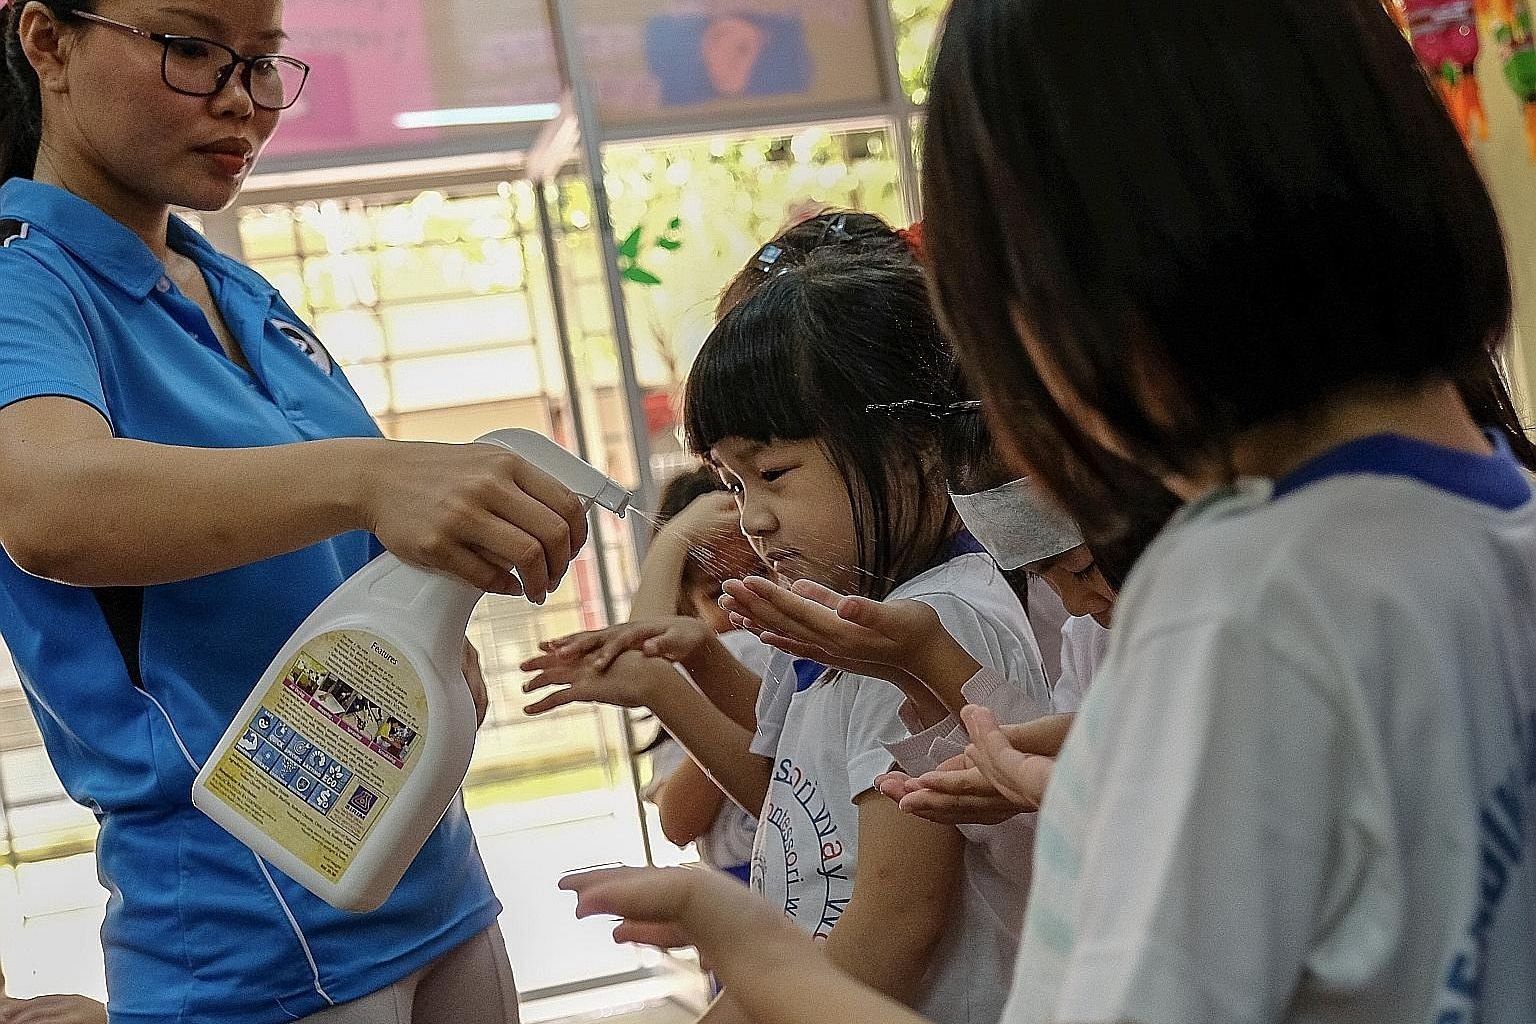 A teacher at a pre-school in Setapak, Kuala Lumpur, spraying sanitiser on children's hands (above) as a precaution against hand, foot and mouth disease, and checking a child's mouth (below) for symptoms of the disease last week. Most Malaysian states